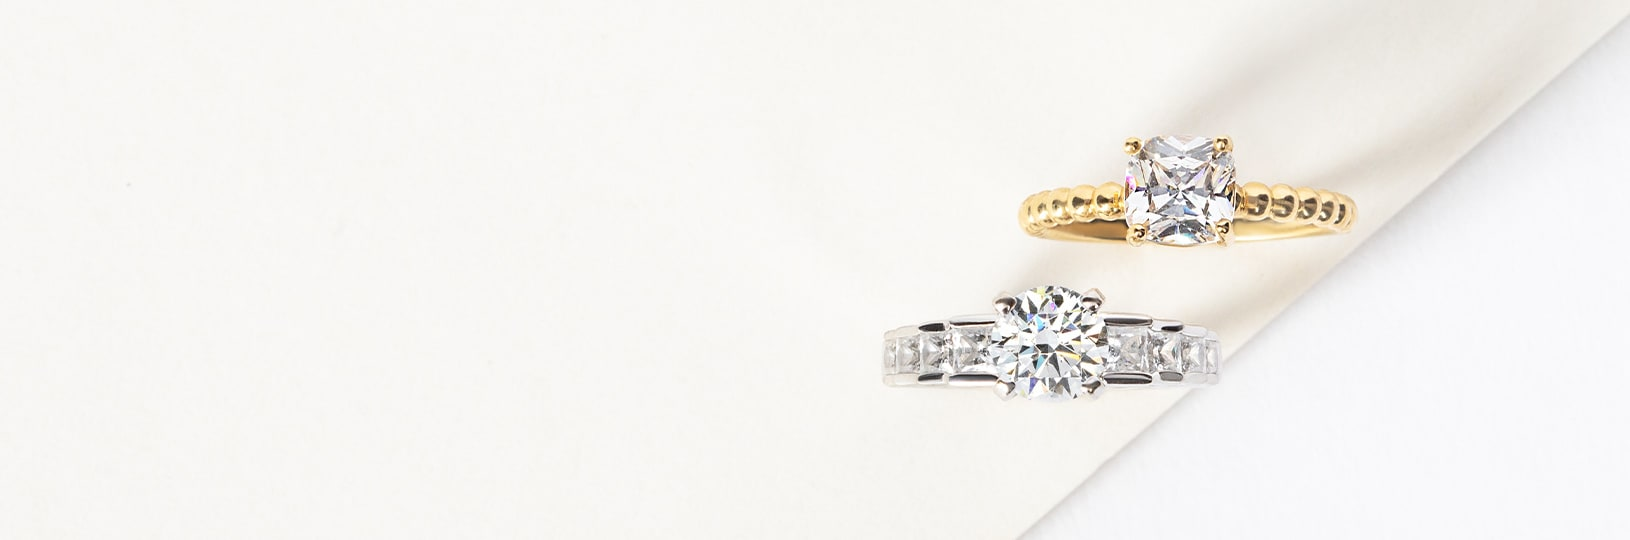 A yellow gold and white gold engagement ring compared side by side